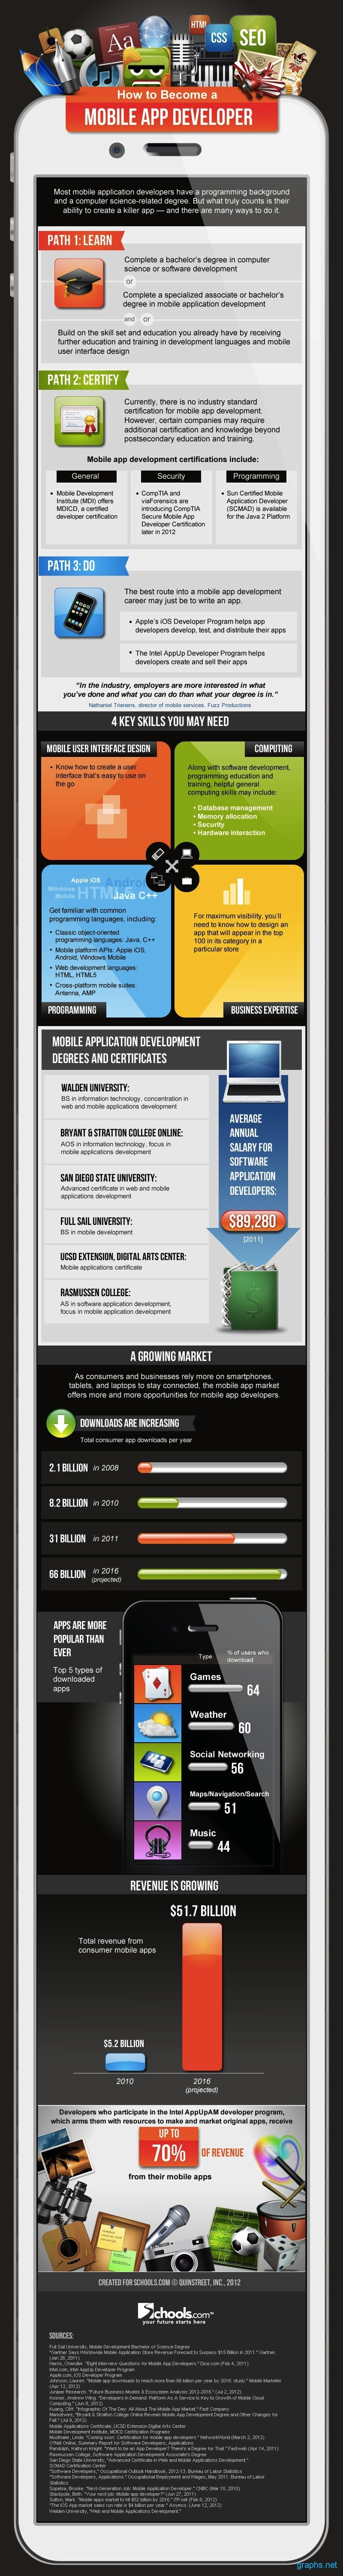 What You Need to Become a Mobile App Developer?